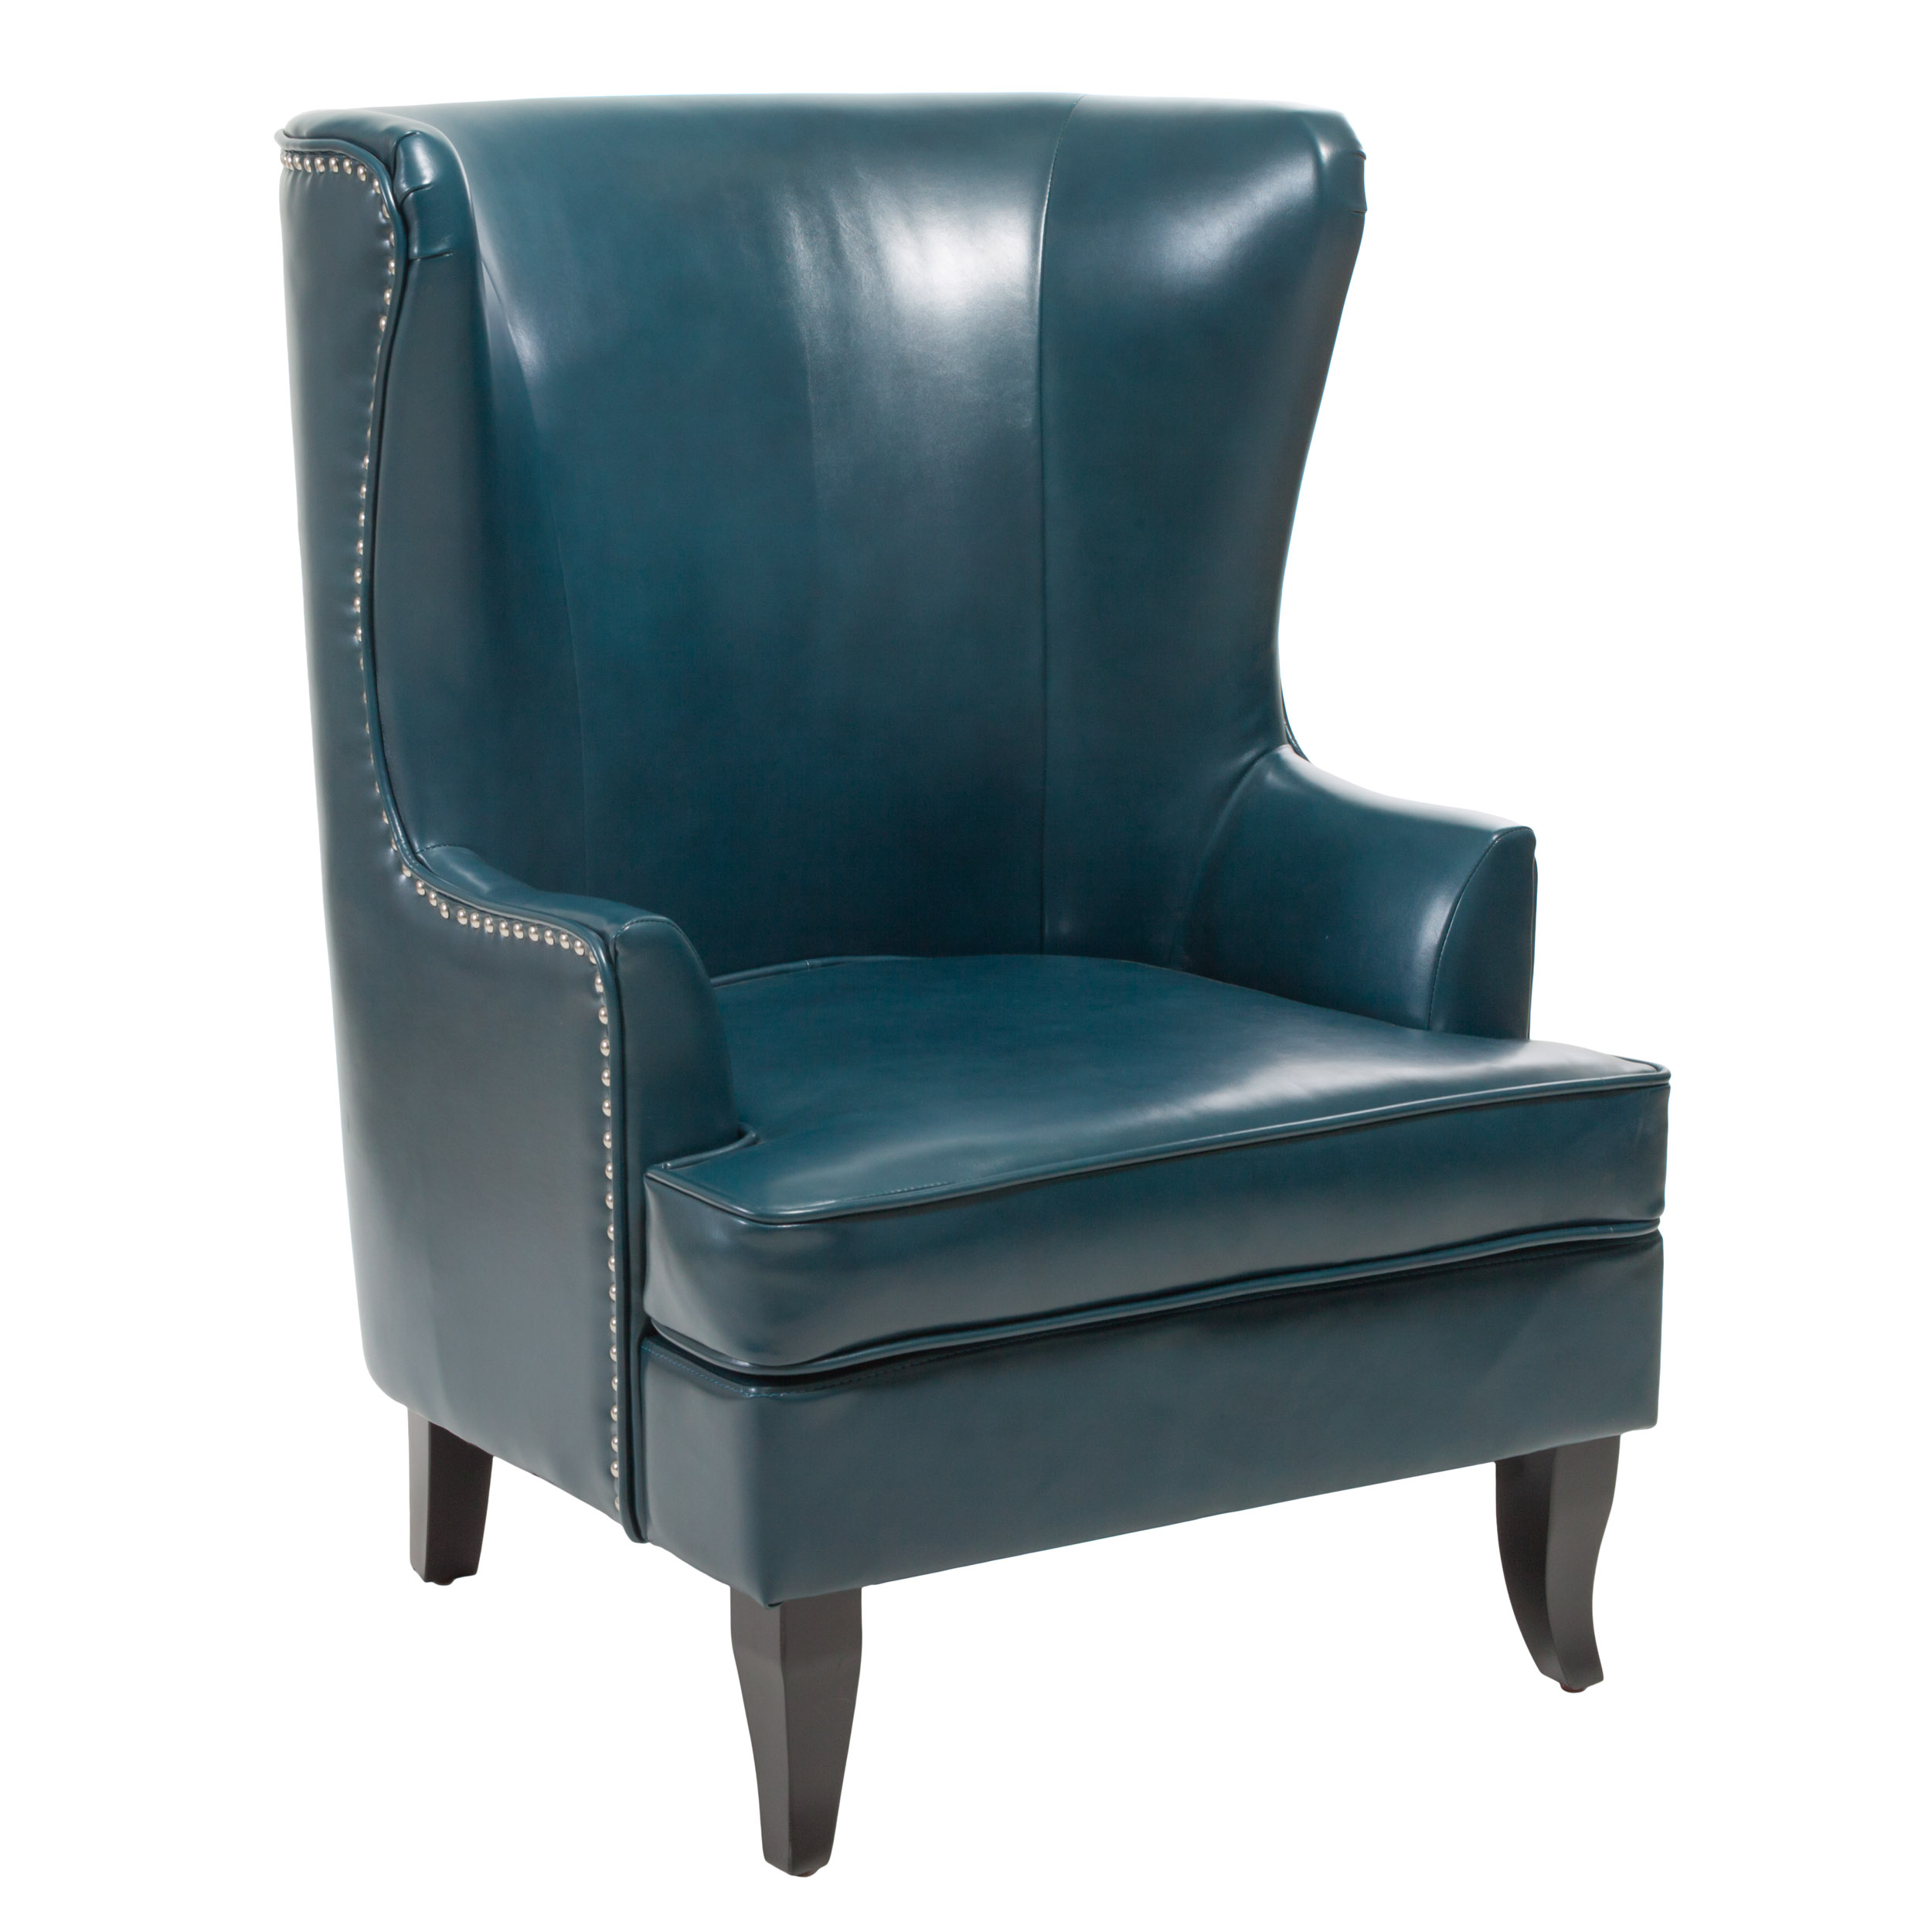 Hesby High Back Wing Chair, Teal